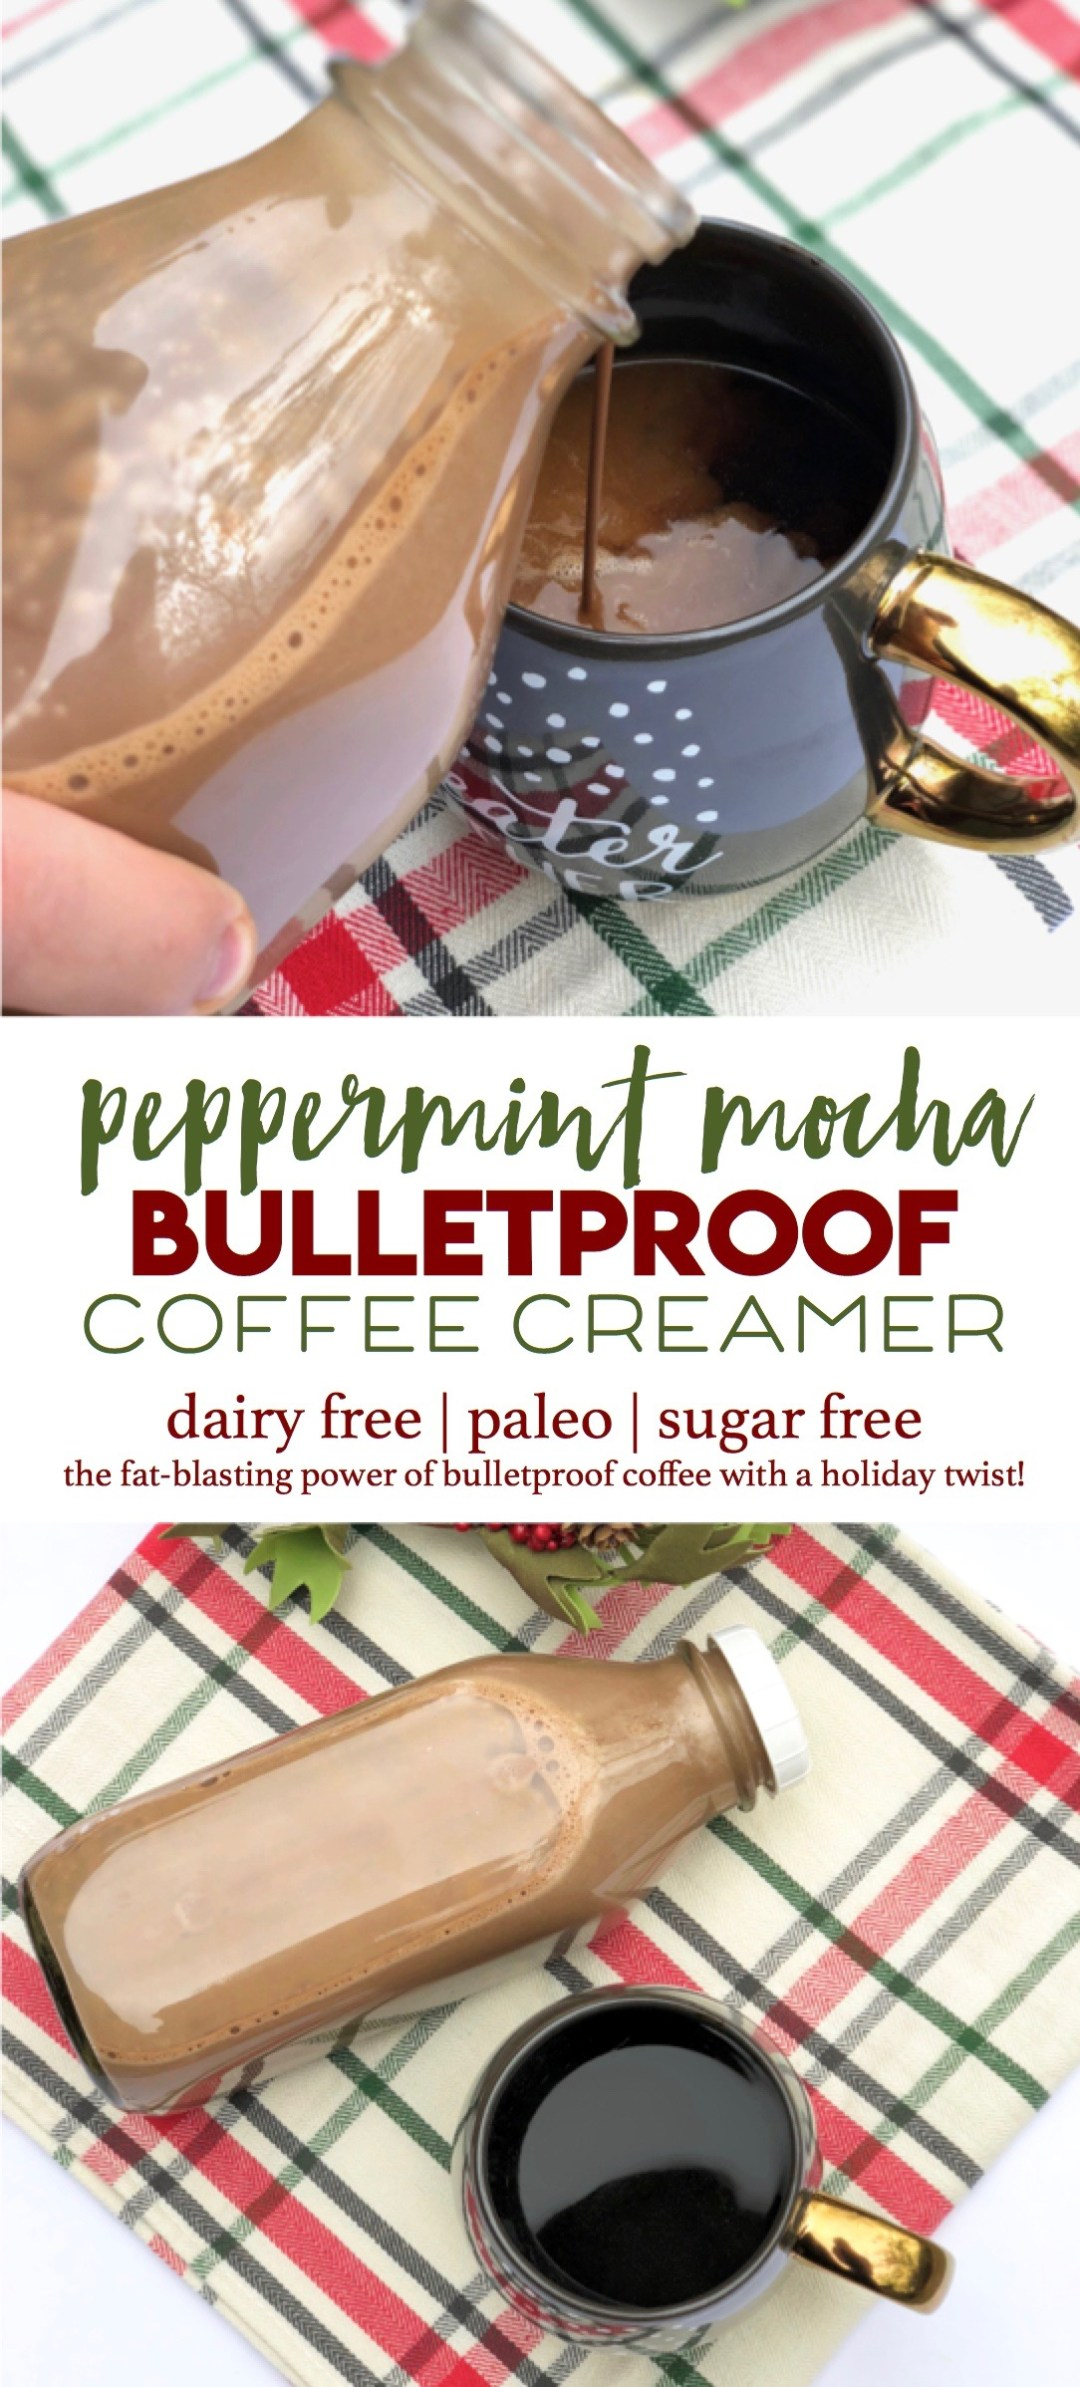 It's like Christmas in a cup! This peppermint mocha coffee creamer makes bulletproof coffee easy and festive. | paleo, dairy free, sugar free with all the fat-blasting power of bulletproof coffee